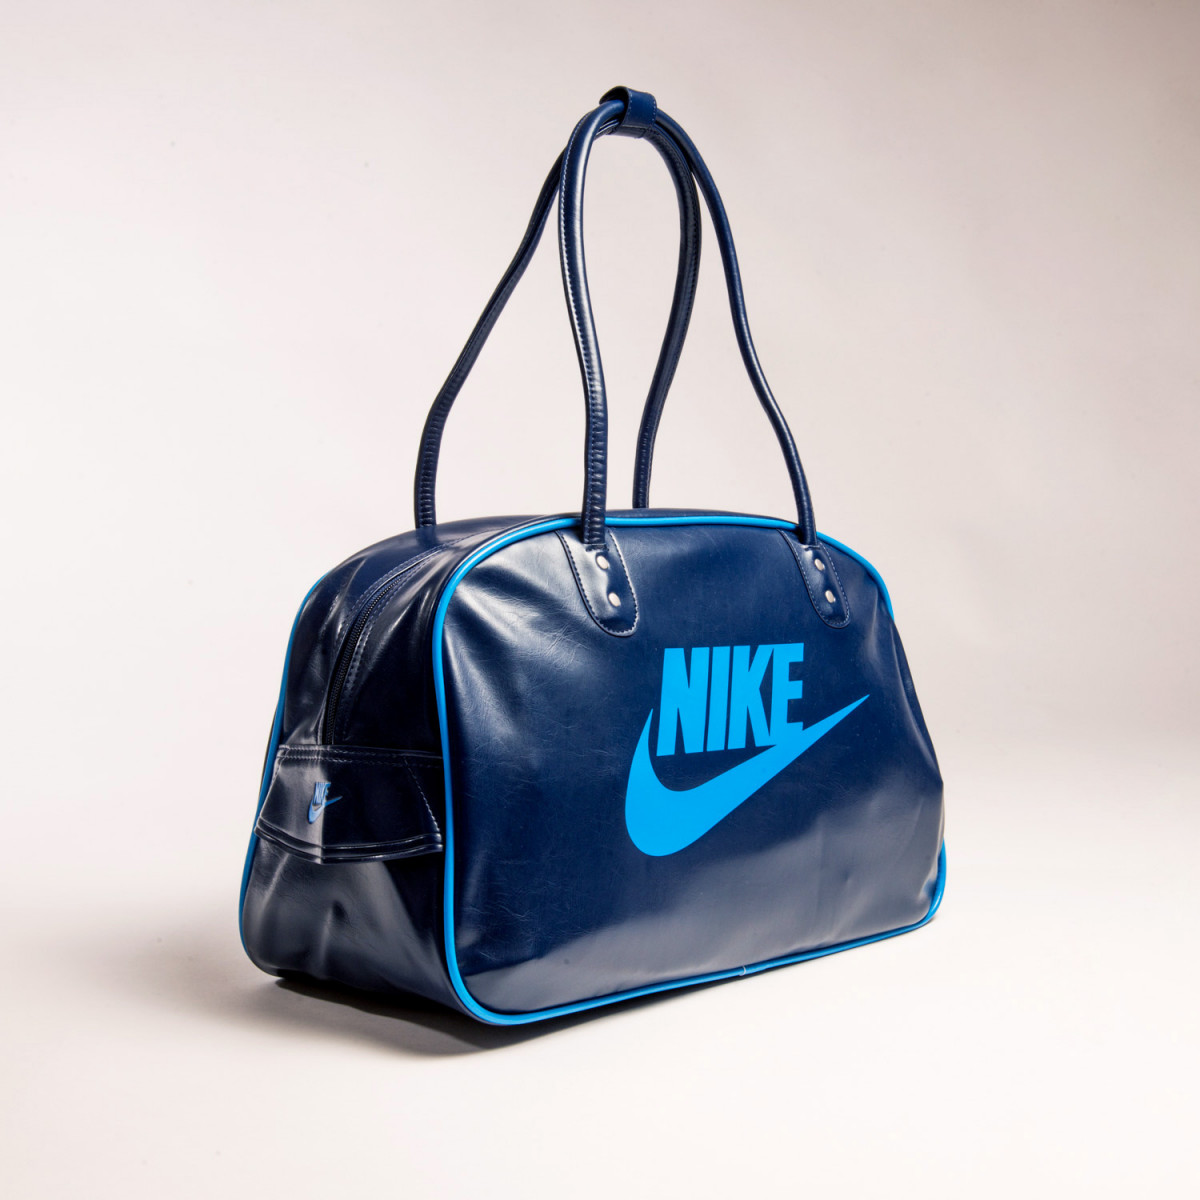 CARTERA NIKE L2 HERITAGE SI SHOULDER CLUB